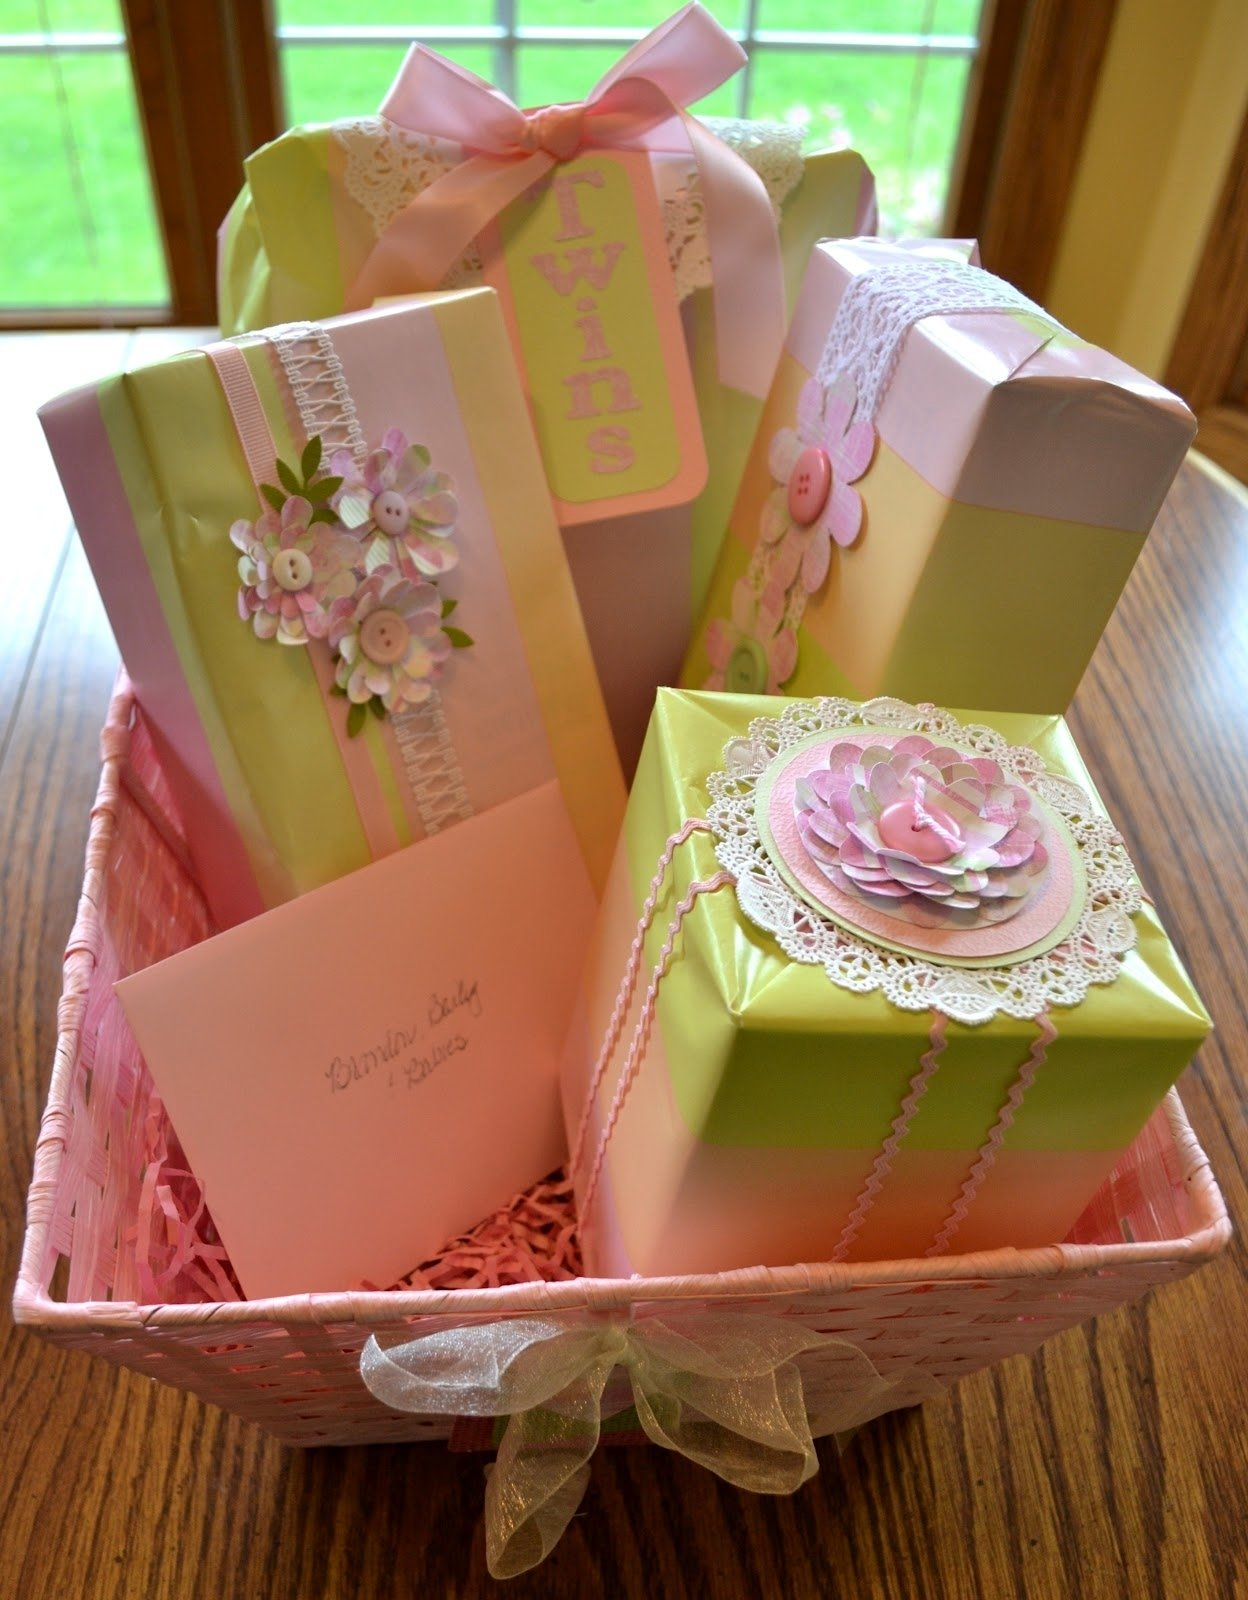 10 Gorgeous Gift Wrapping Ideas For Baby Shower gift card wrapping ideas for baby shower e280a2 baby showers ideas 2020